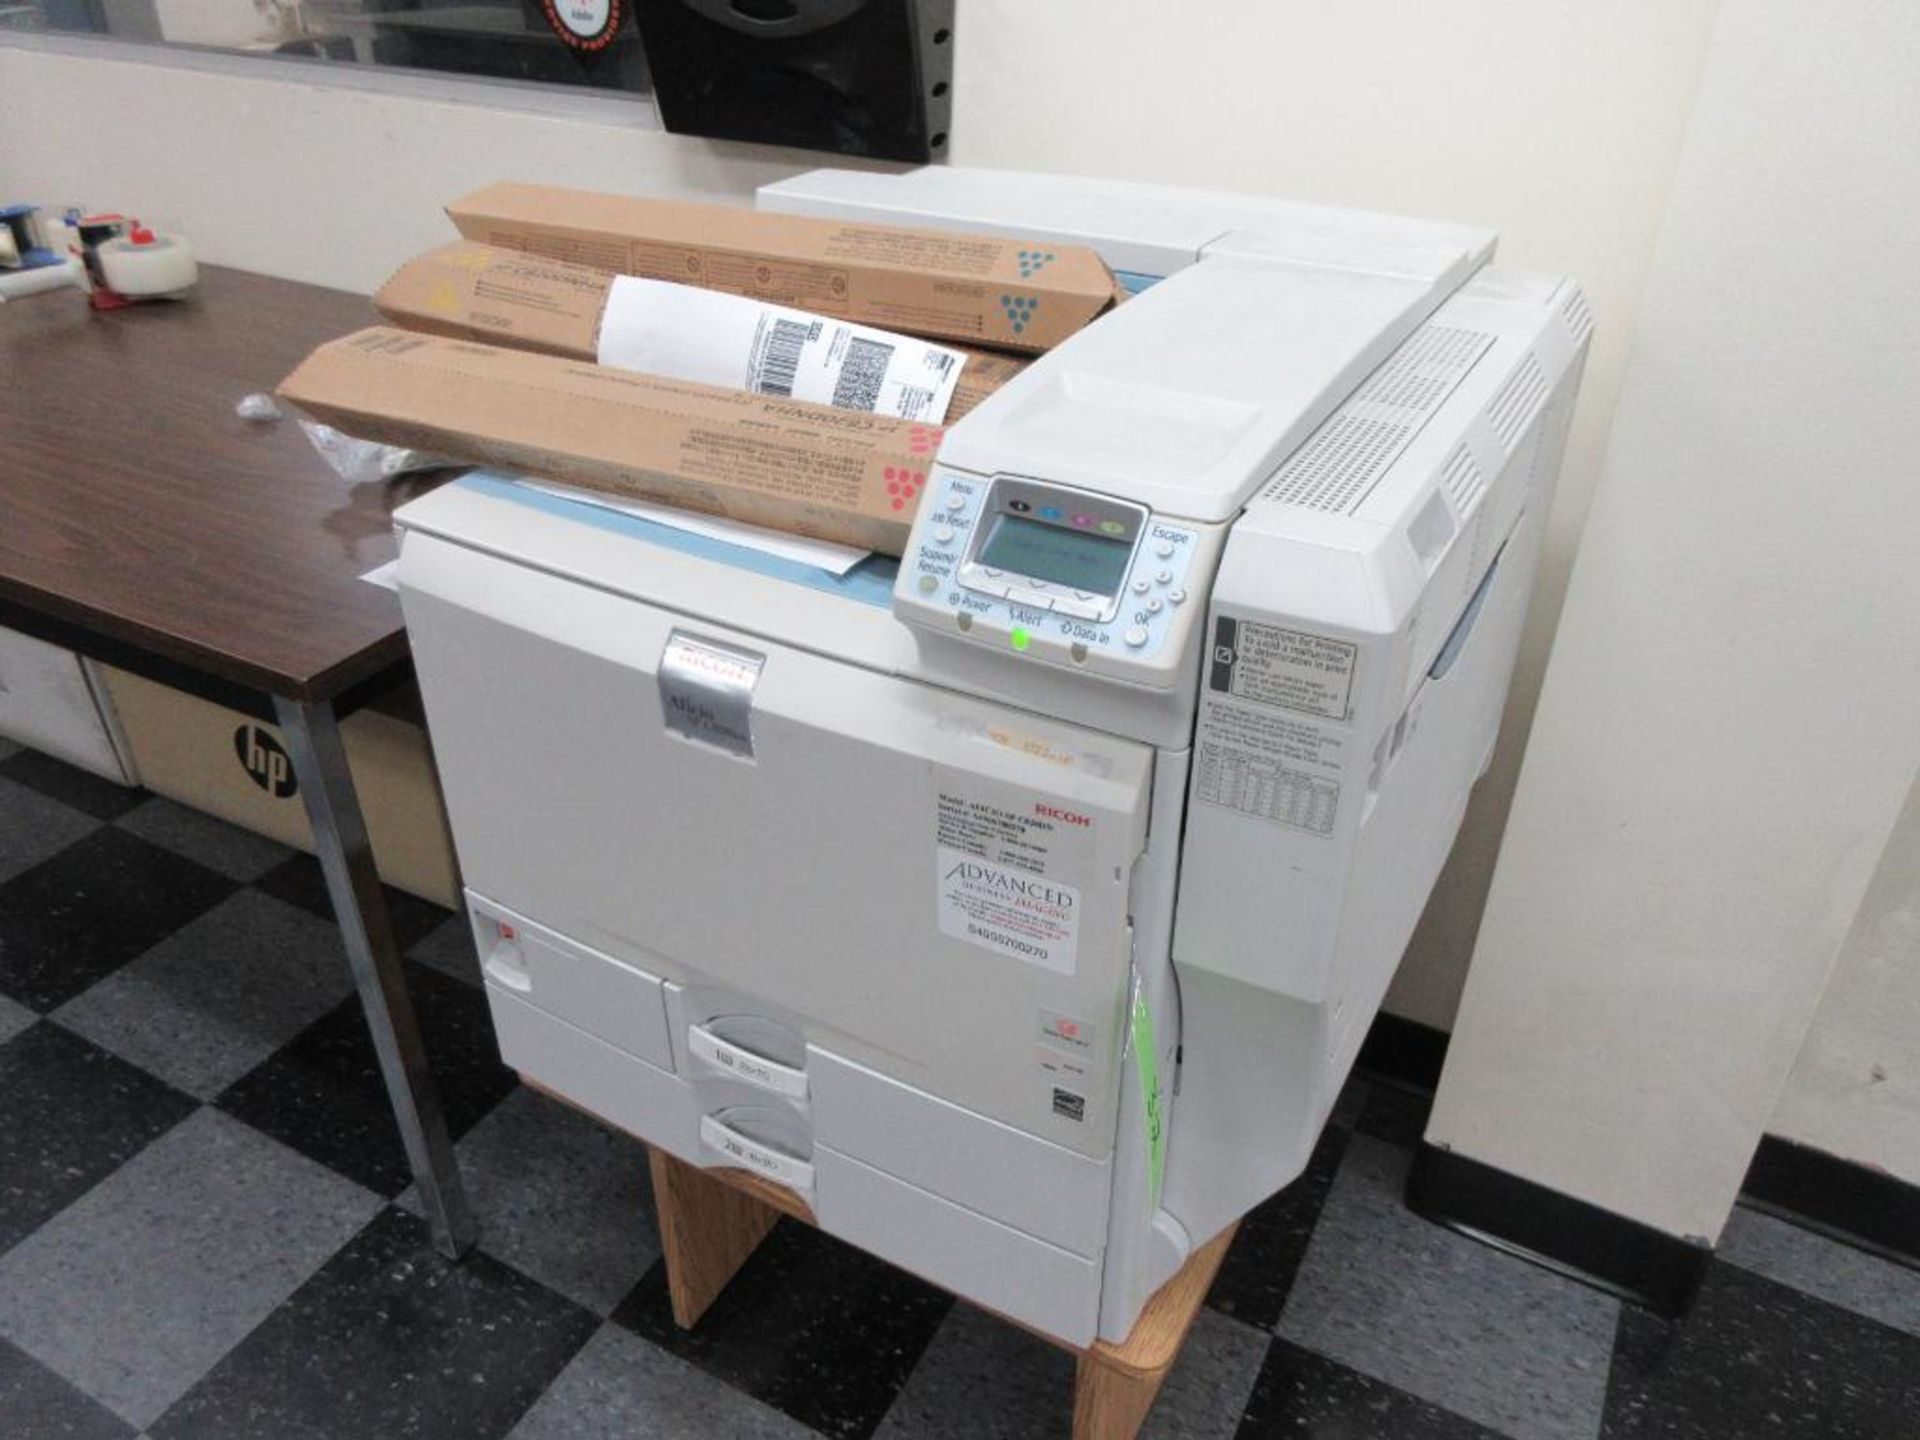 Ricoh Aficio SP C820DN colour printer, includes colour print cartridges